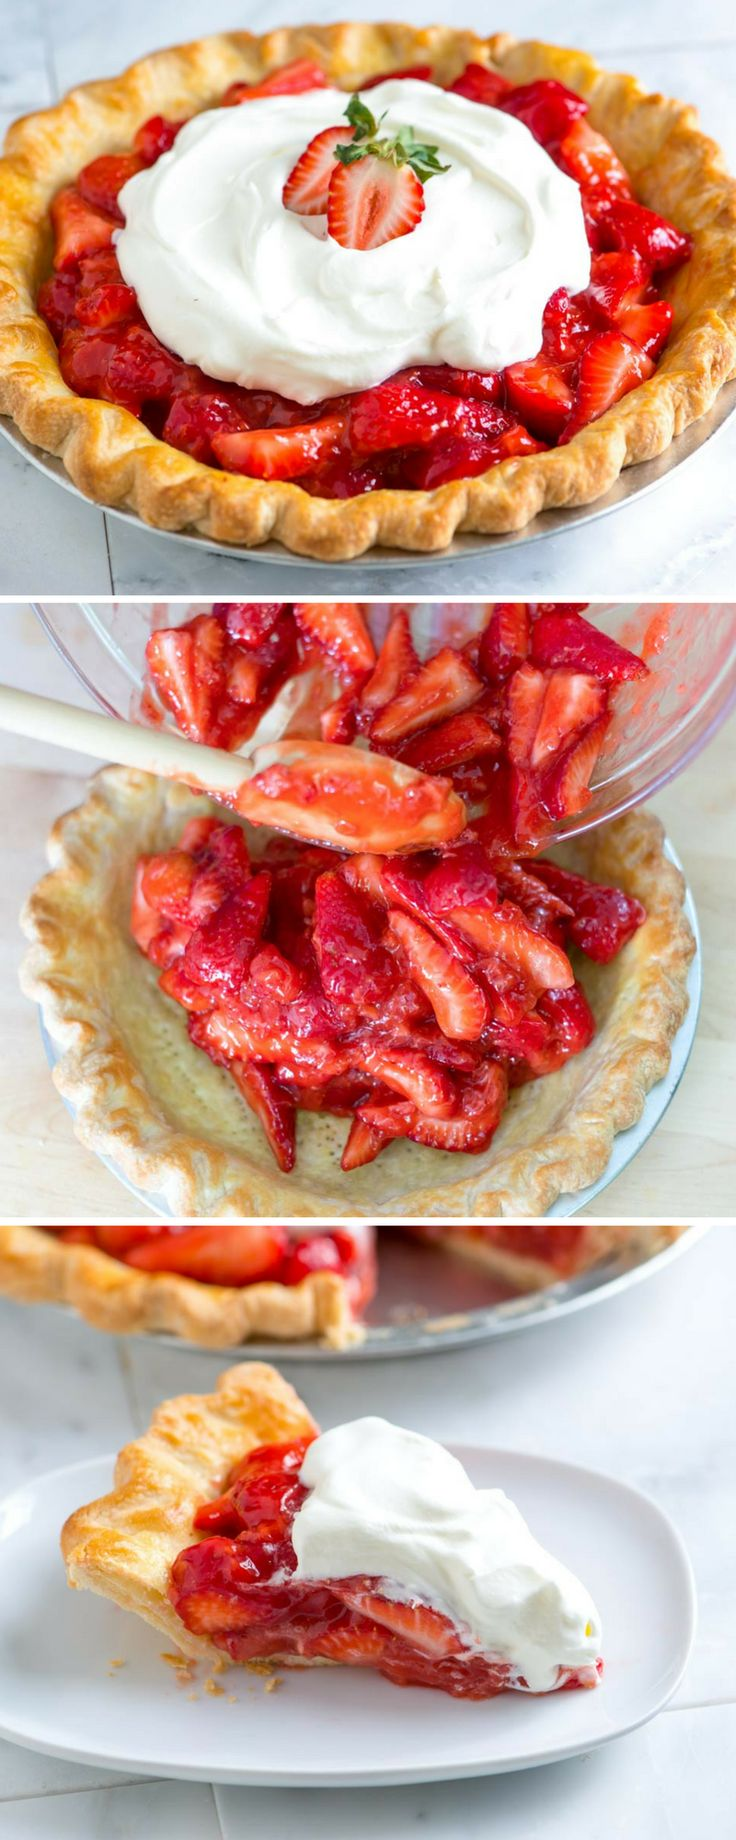 I love this fresh strawberry pie recipe! The strawberry filling has sweet strawberries coated in a light strawberry glaze, and then the whole pie is topped with whipped cream. It's the perfect way to use up fresh strawberries!